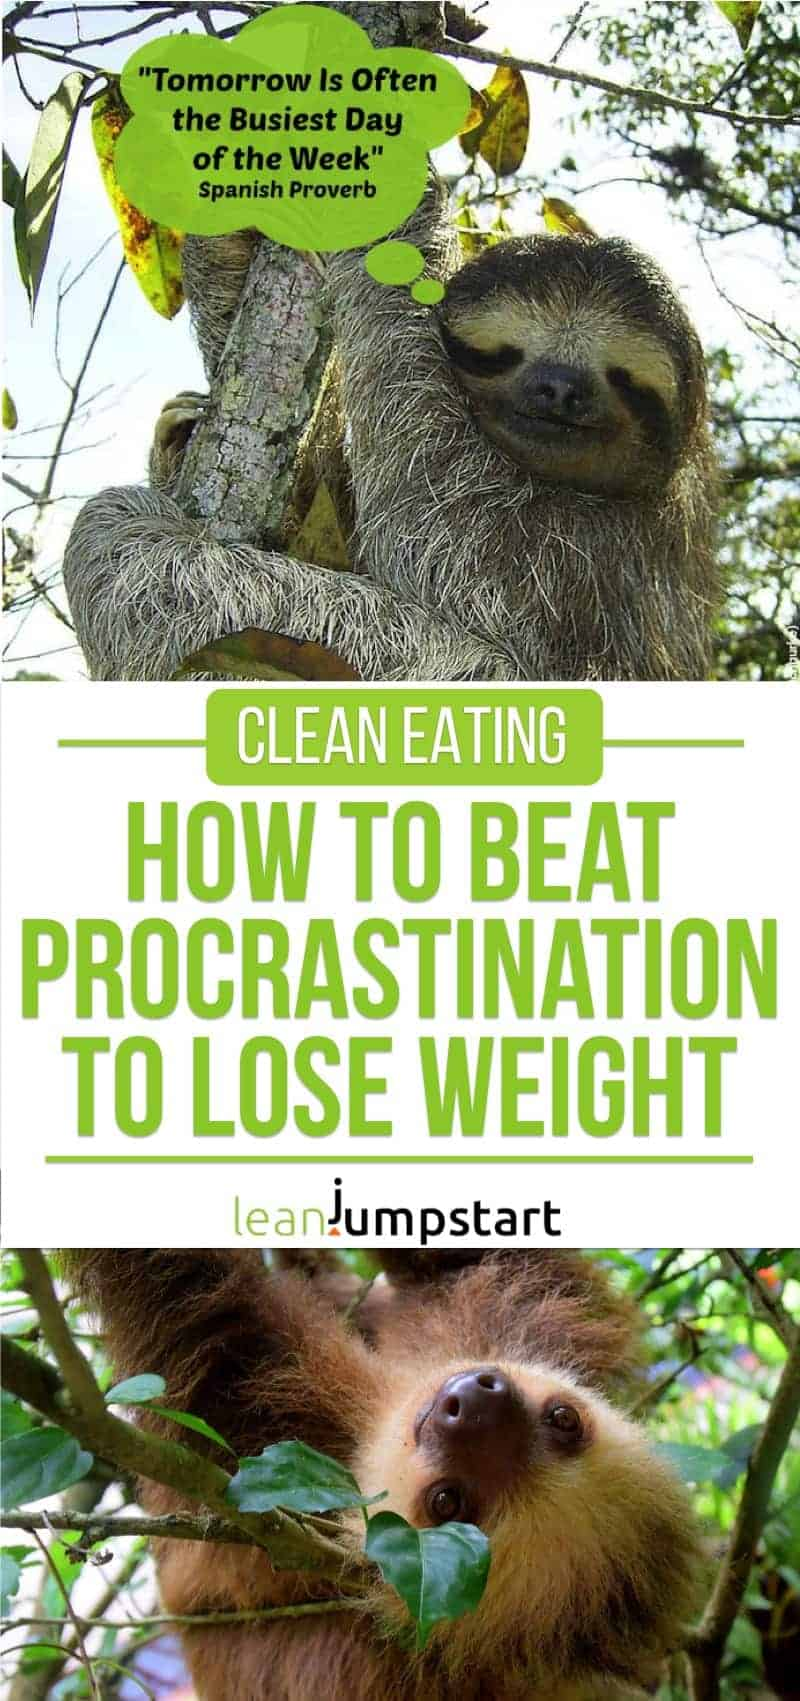 clean eating: how to beat procrastination to lose weight